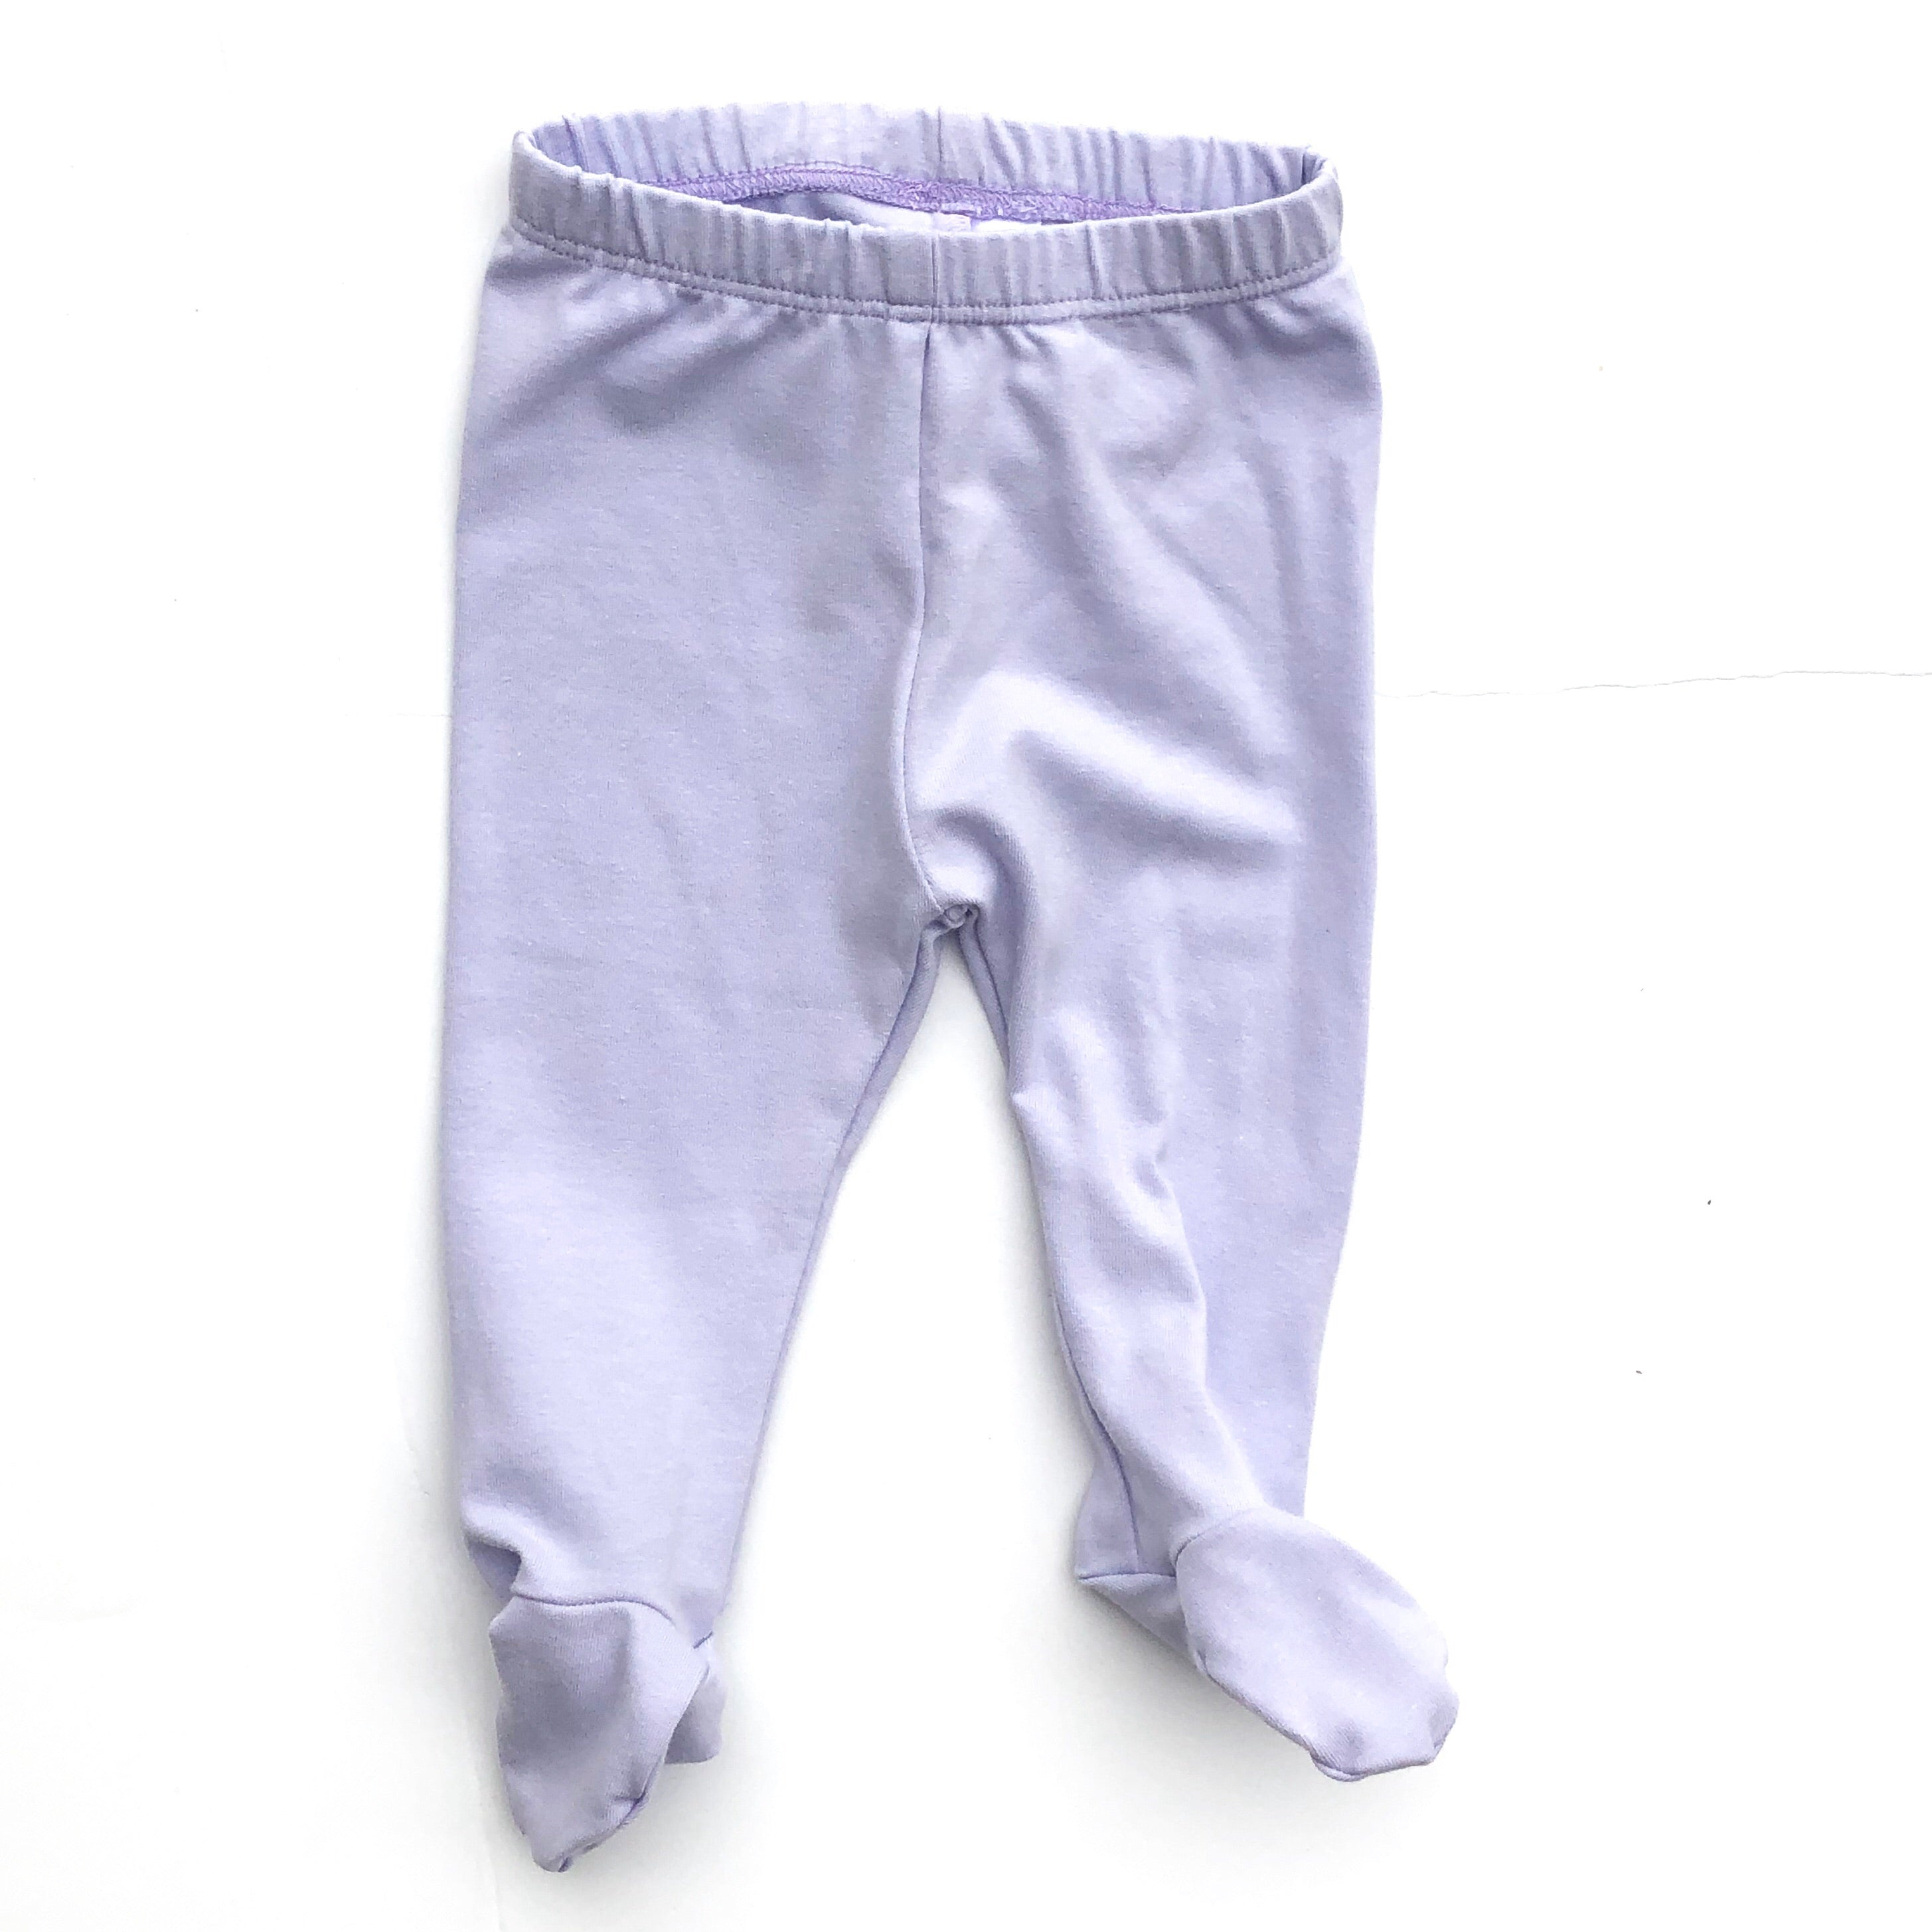 Lavender Footed Pants